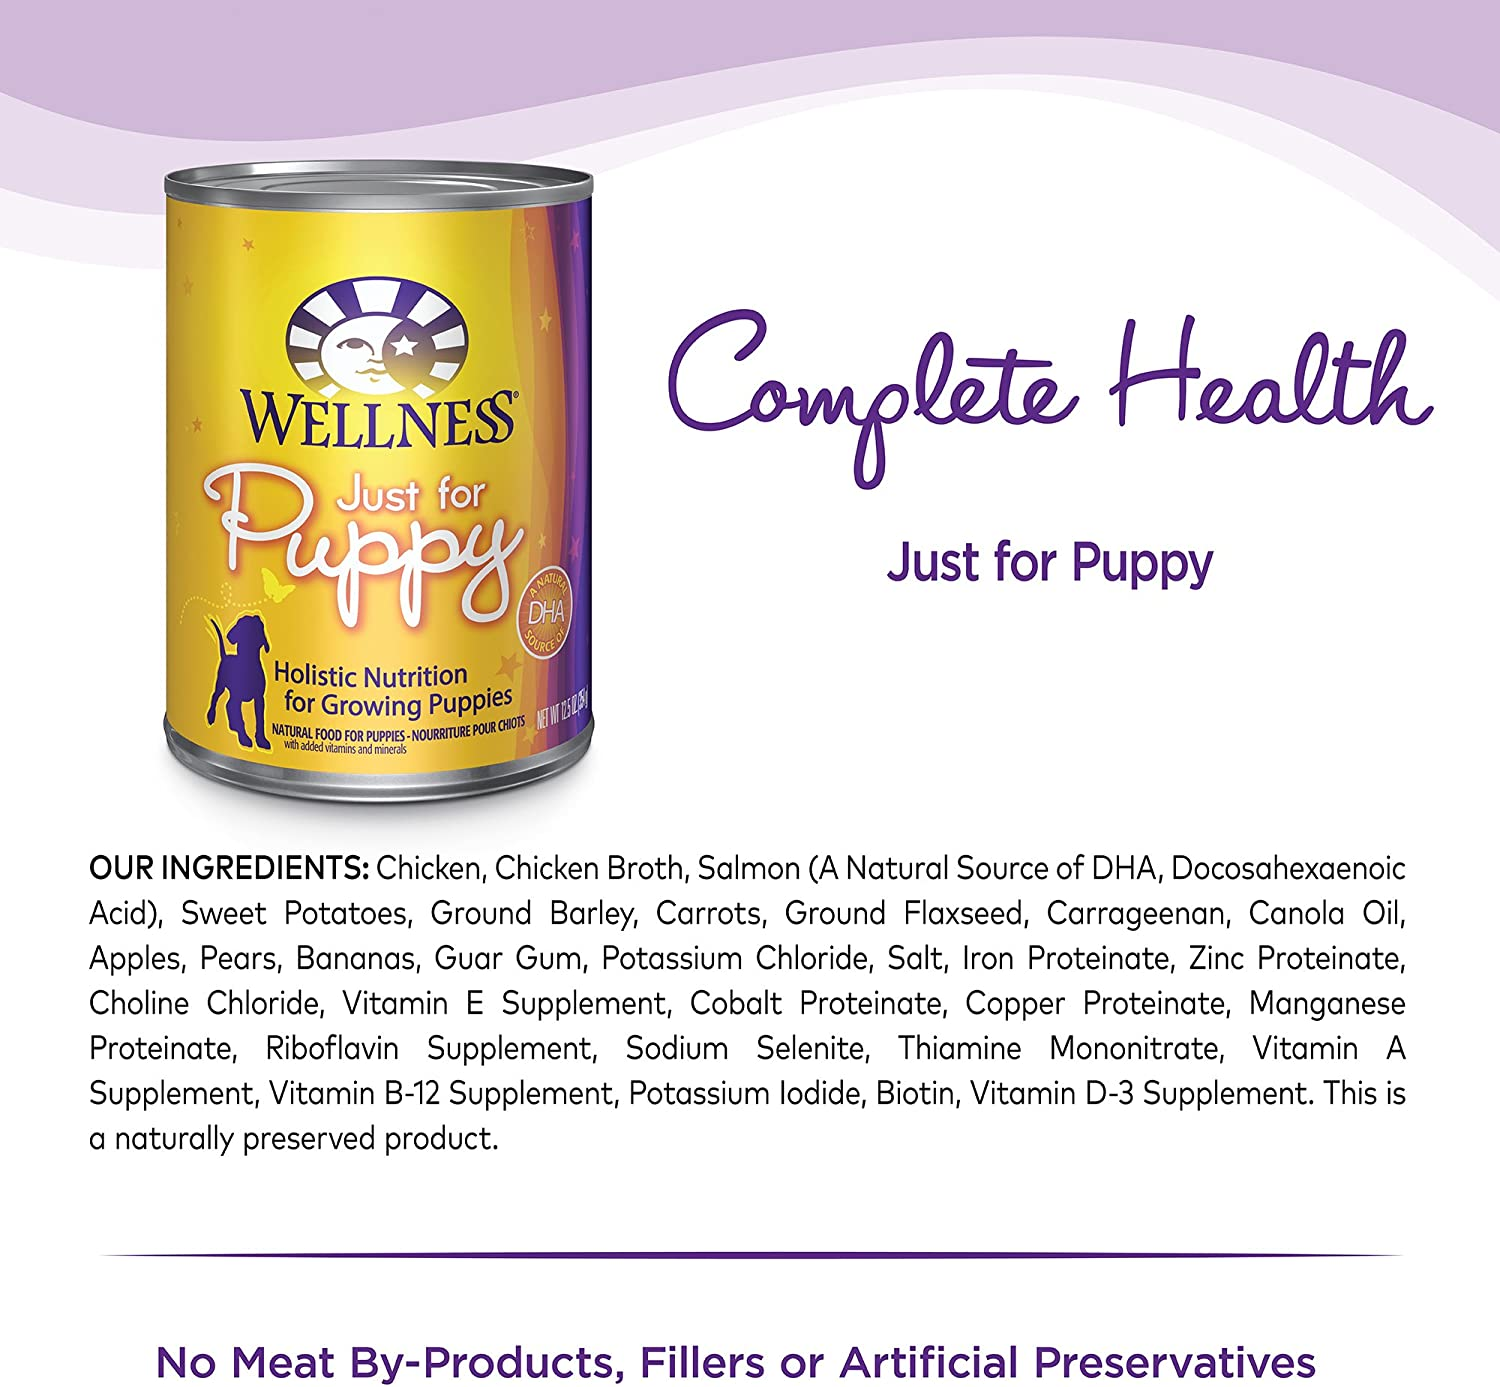 Wellness Complete Health Natural Wet Canned Dog Food Puppy Chicken Salmon